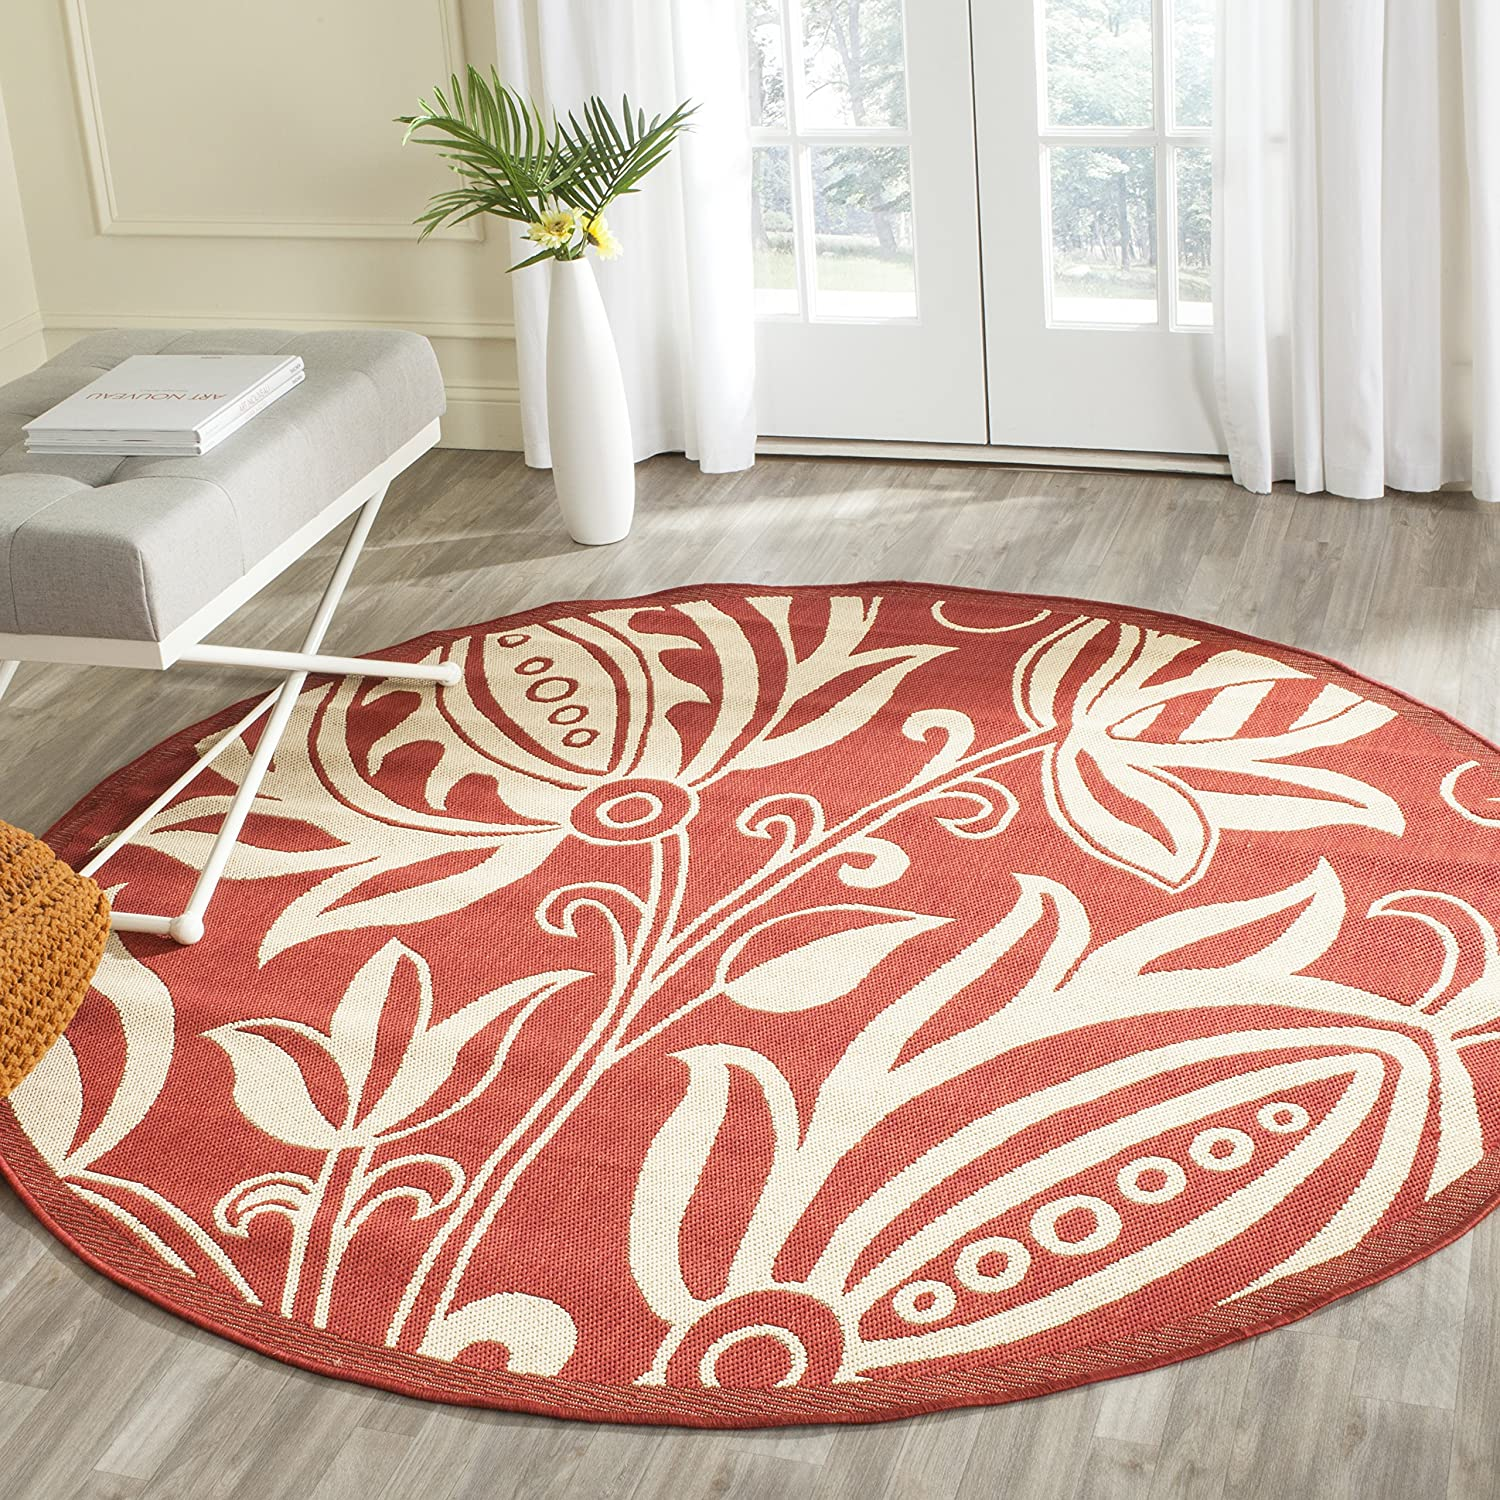 Amazon Safavieh Courtyard Collection CY2961 3707 Red and